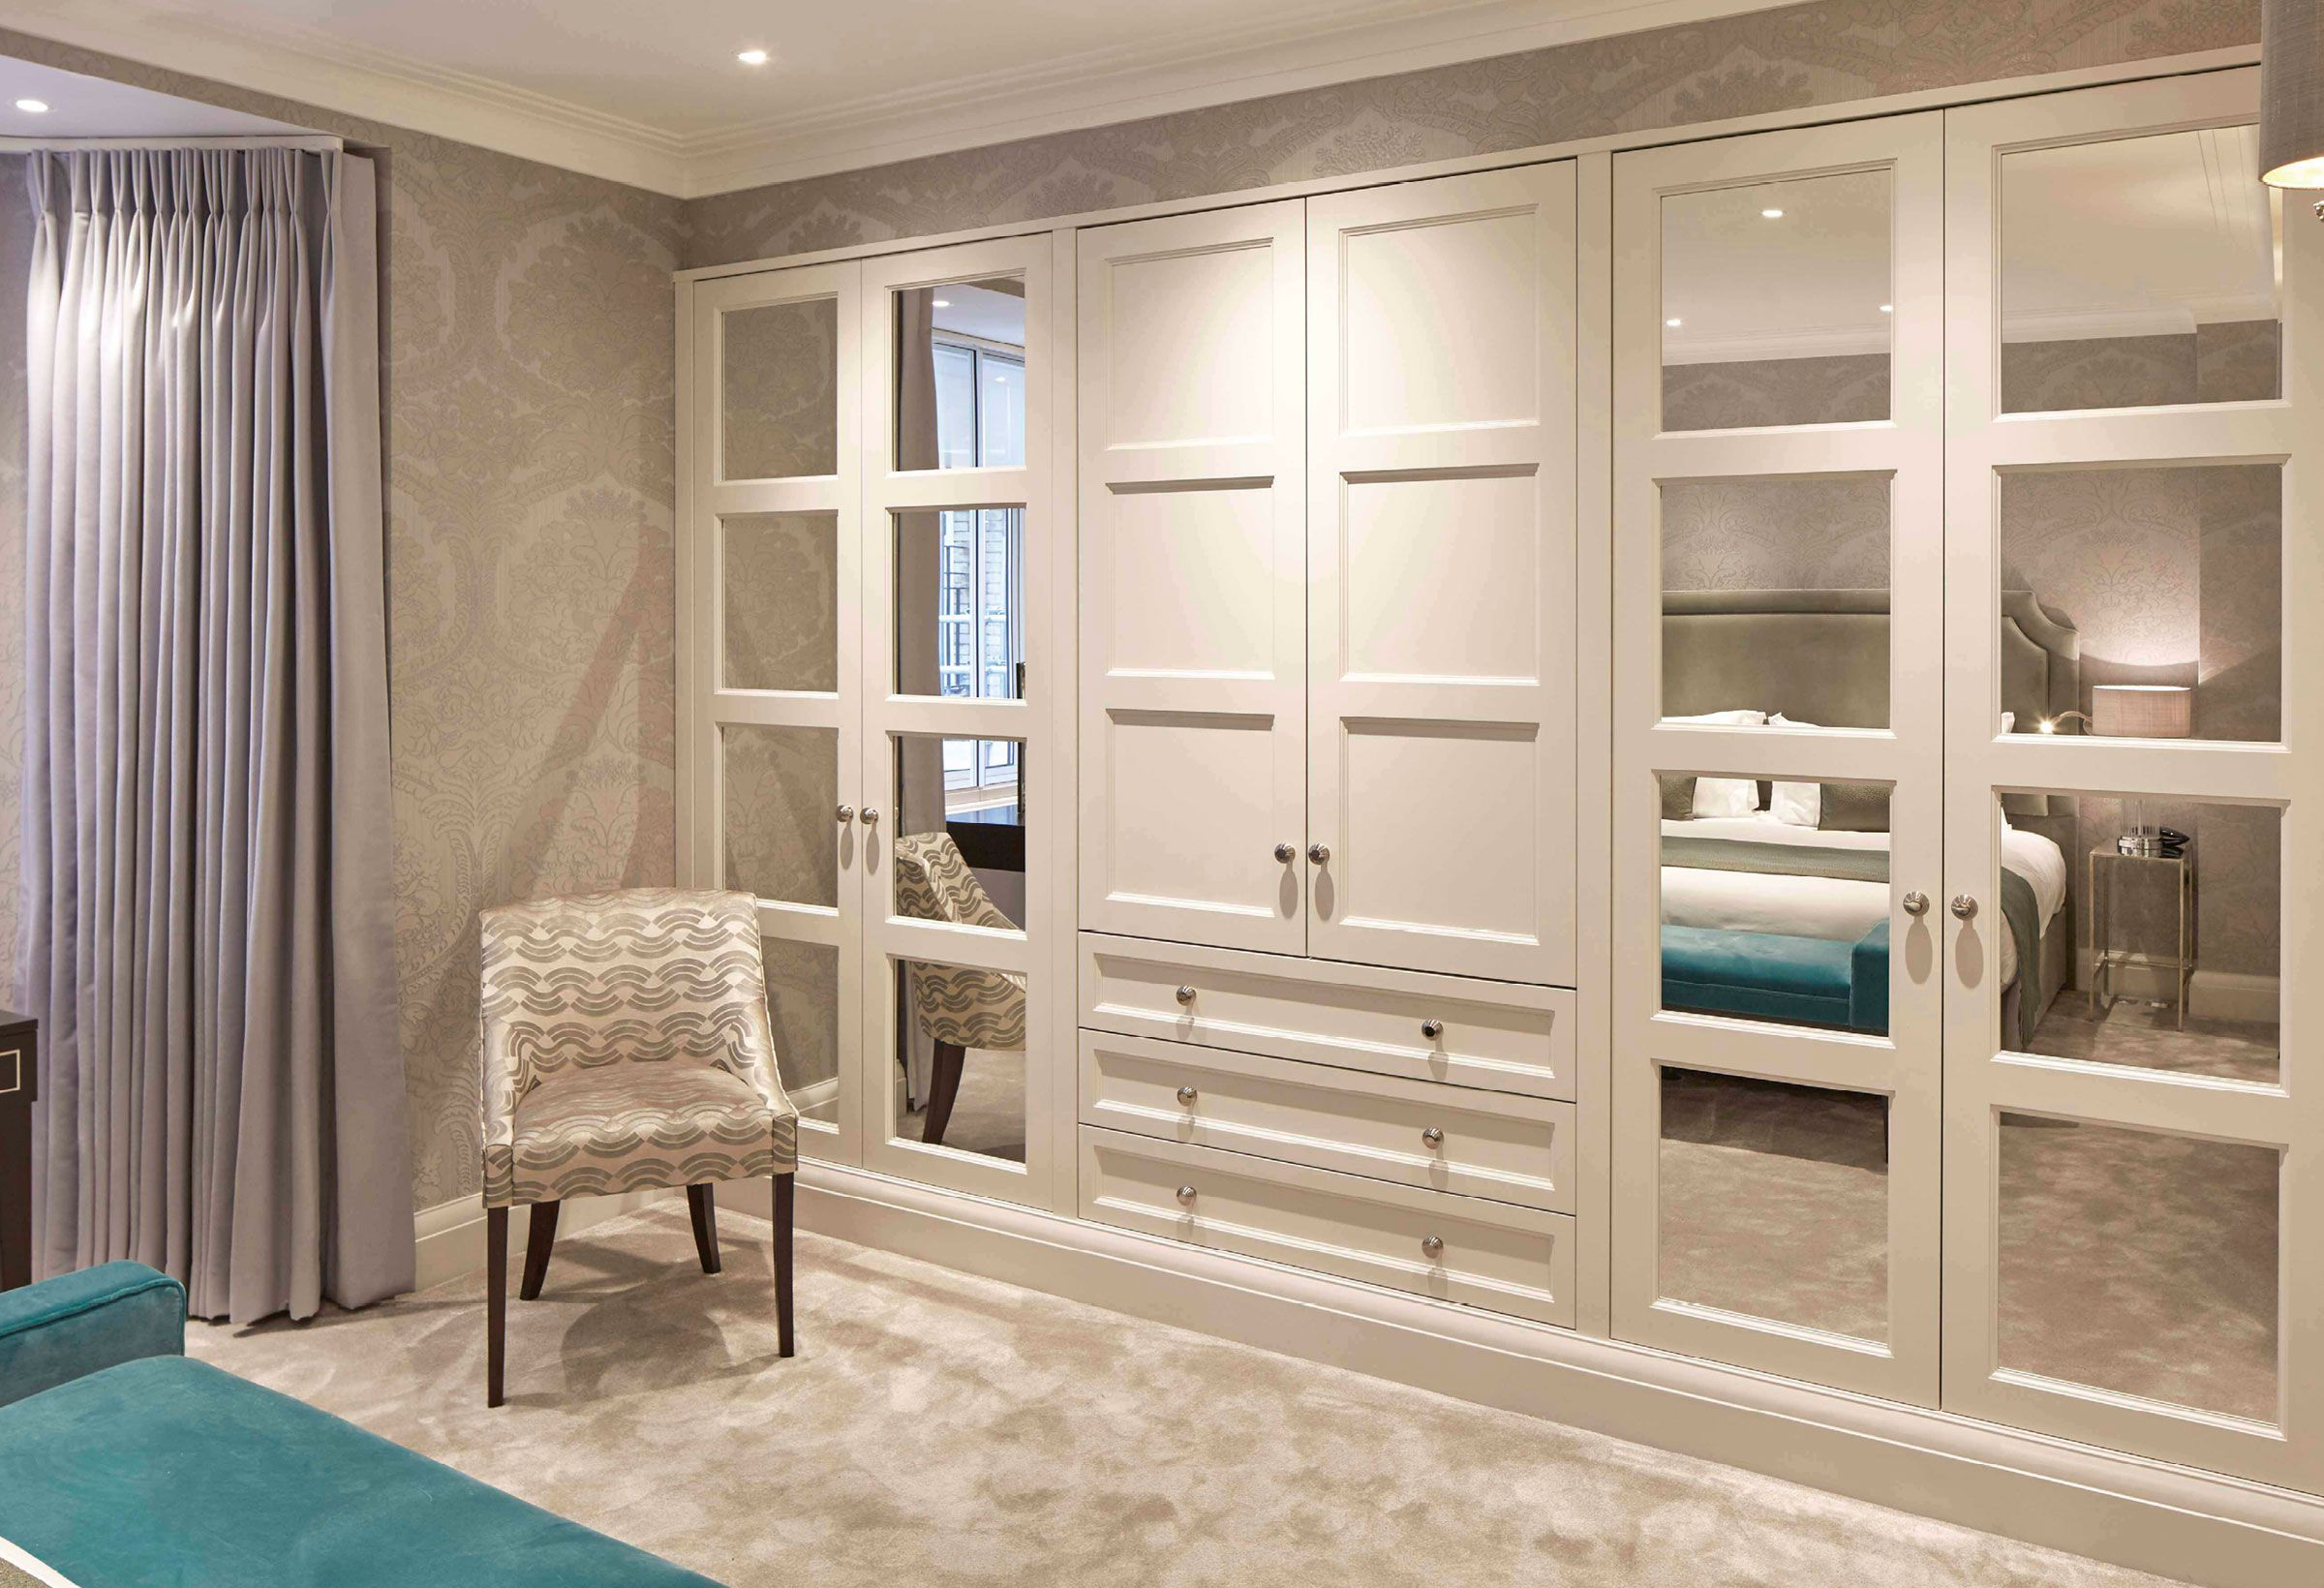 Best Windsor Wardrobe Design Bespoke Built In Fitted 640 x 480